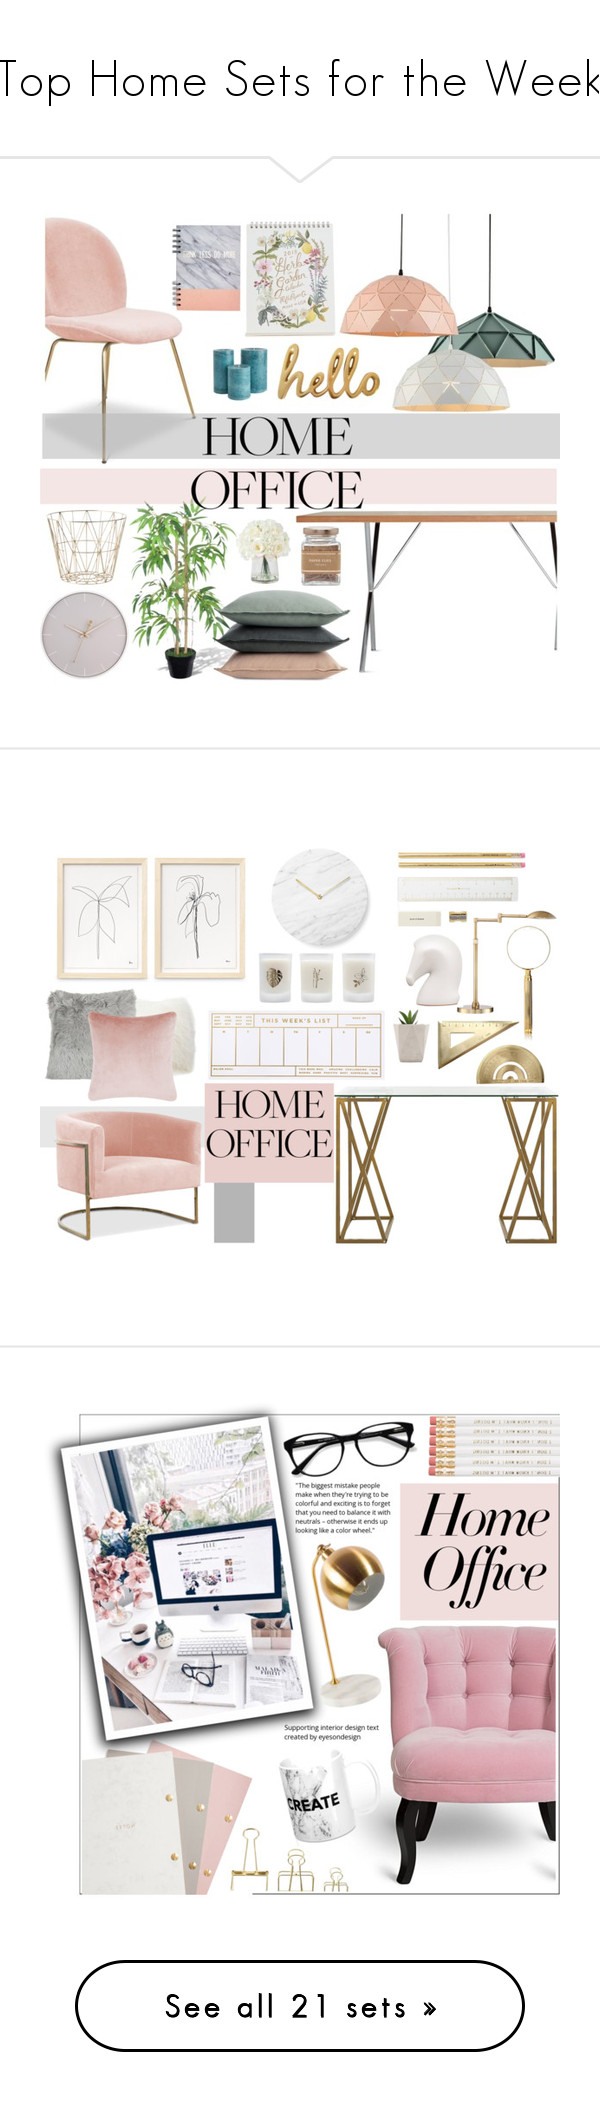 top home decor interior design.  Top Home Sets for the Week by polyvore liked on Polyvore featuring interior interiors design home decor decorating Design